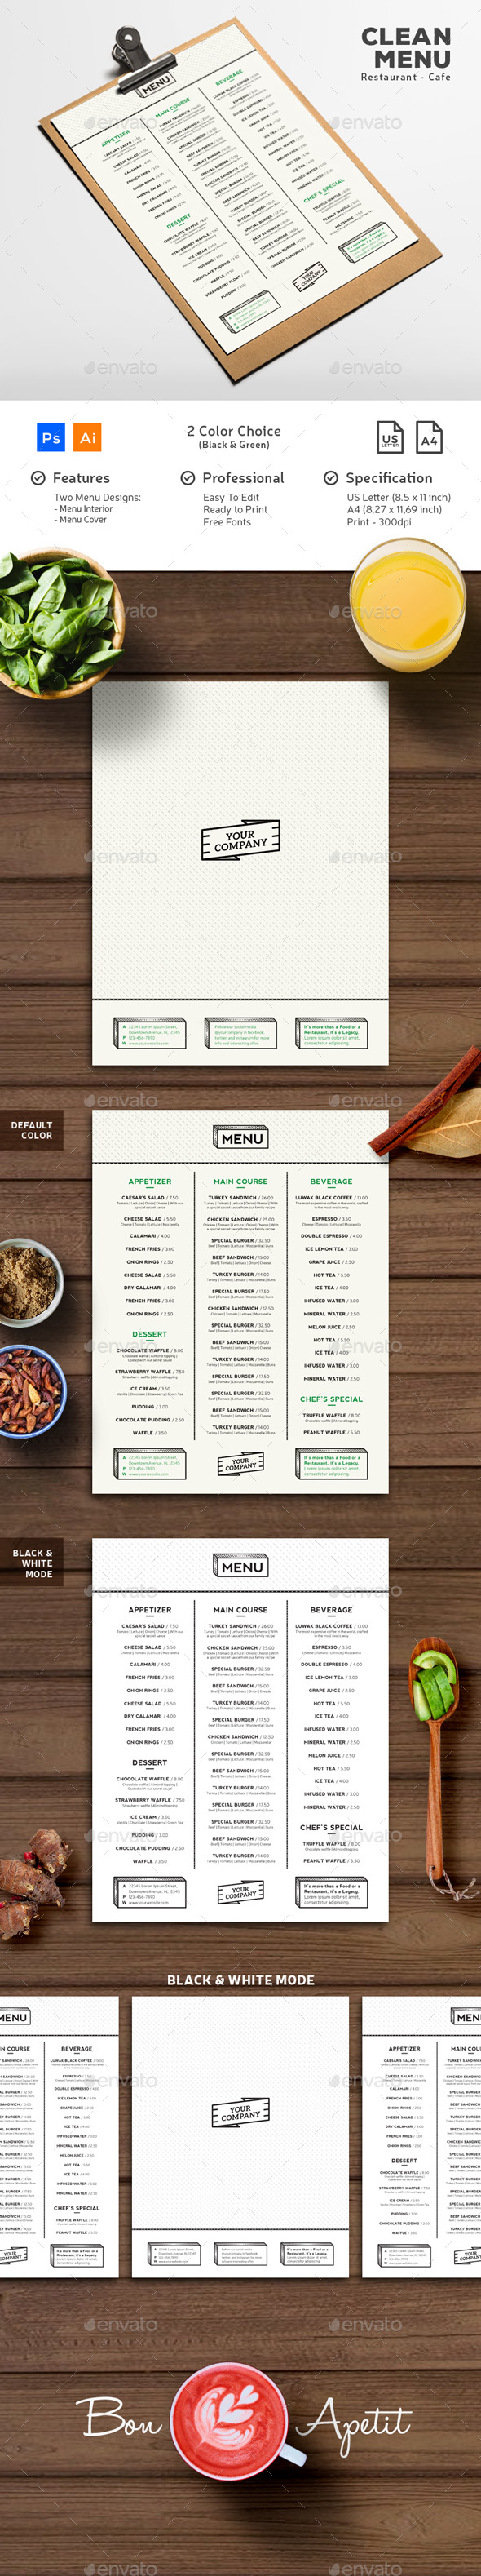 Clean Minimalist Menu - Food Menus Print Templates